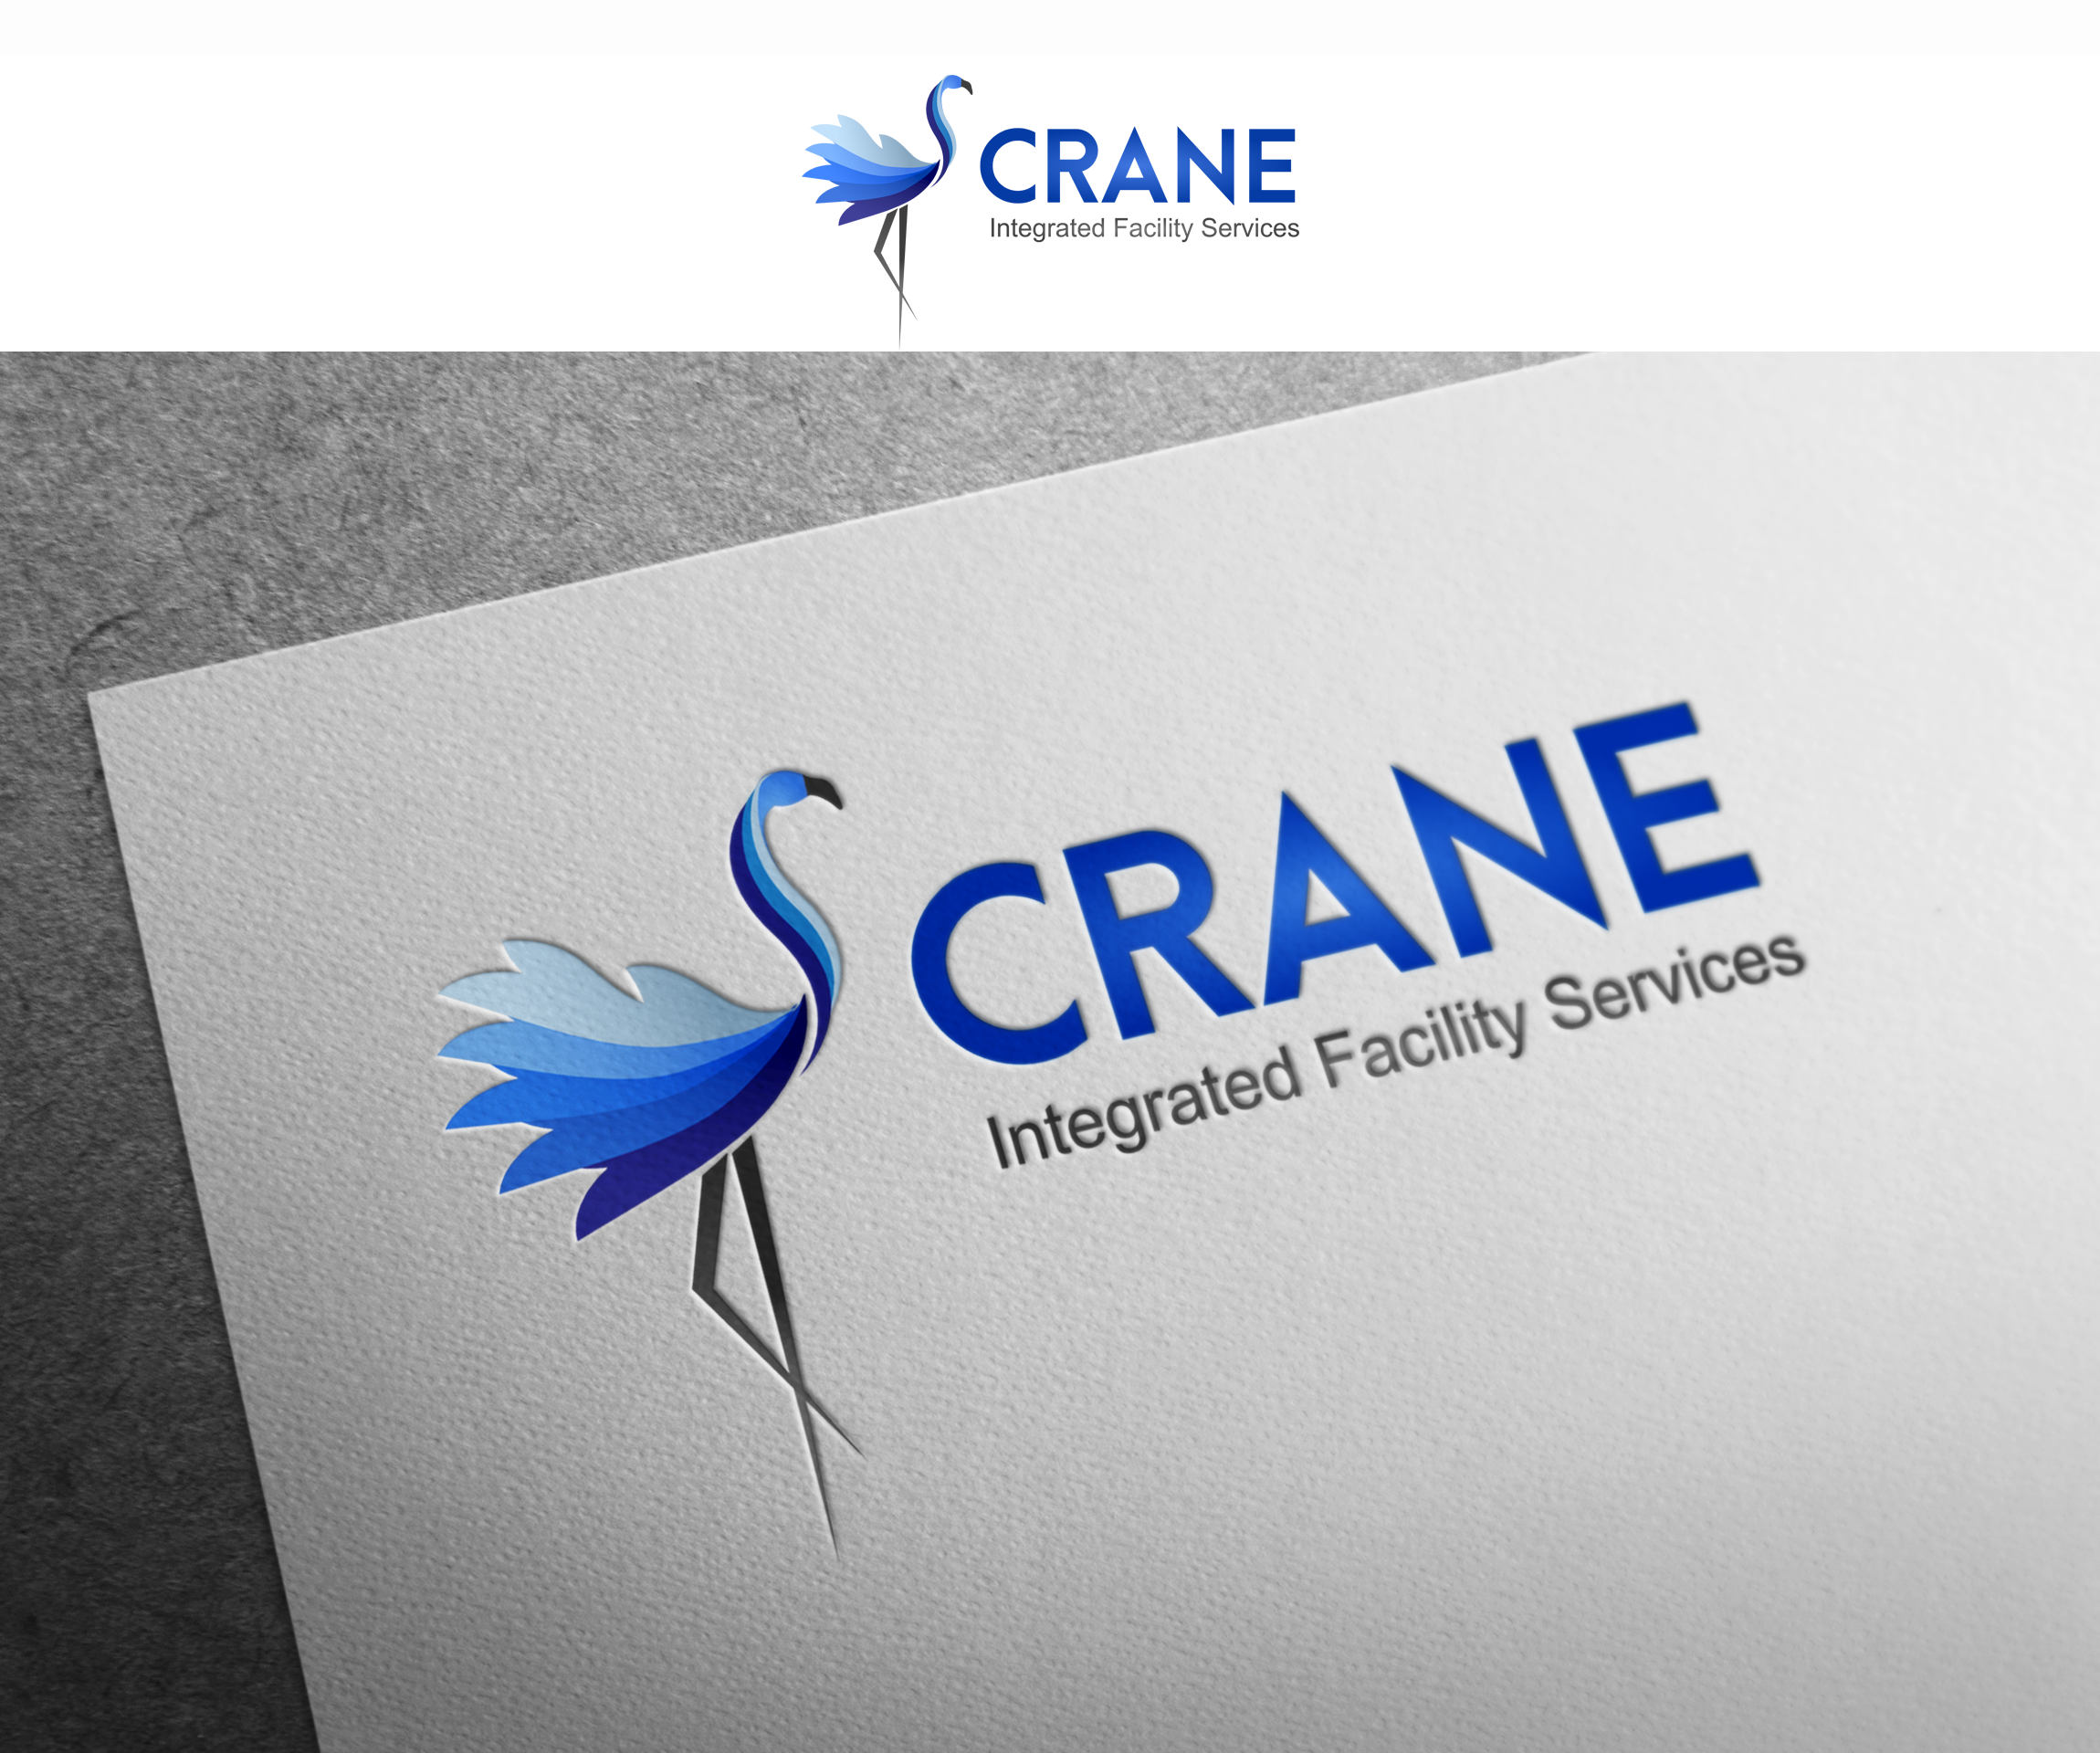 Logo Design by Hania Hassaan - Entry No. 26 in the Logo Design Contest Inspiring Logo Design for Crane Integrated Facility Services.